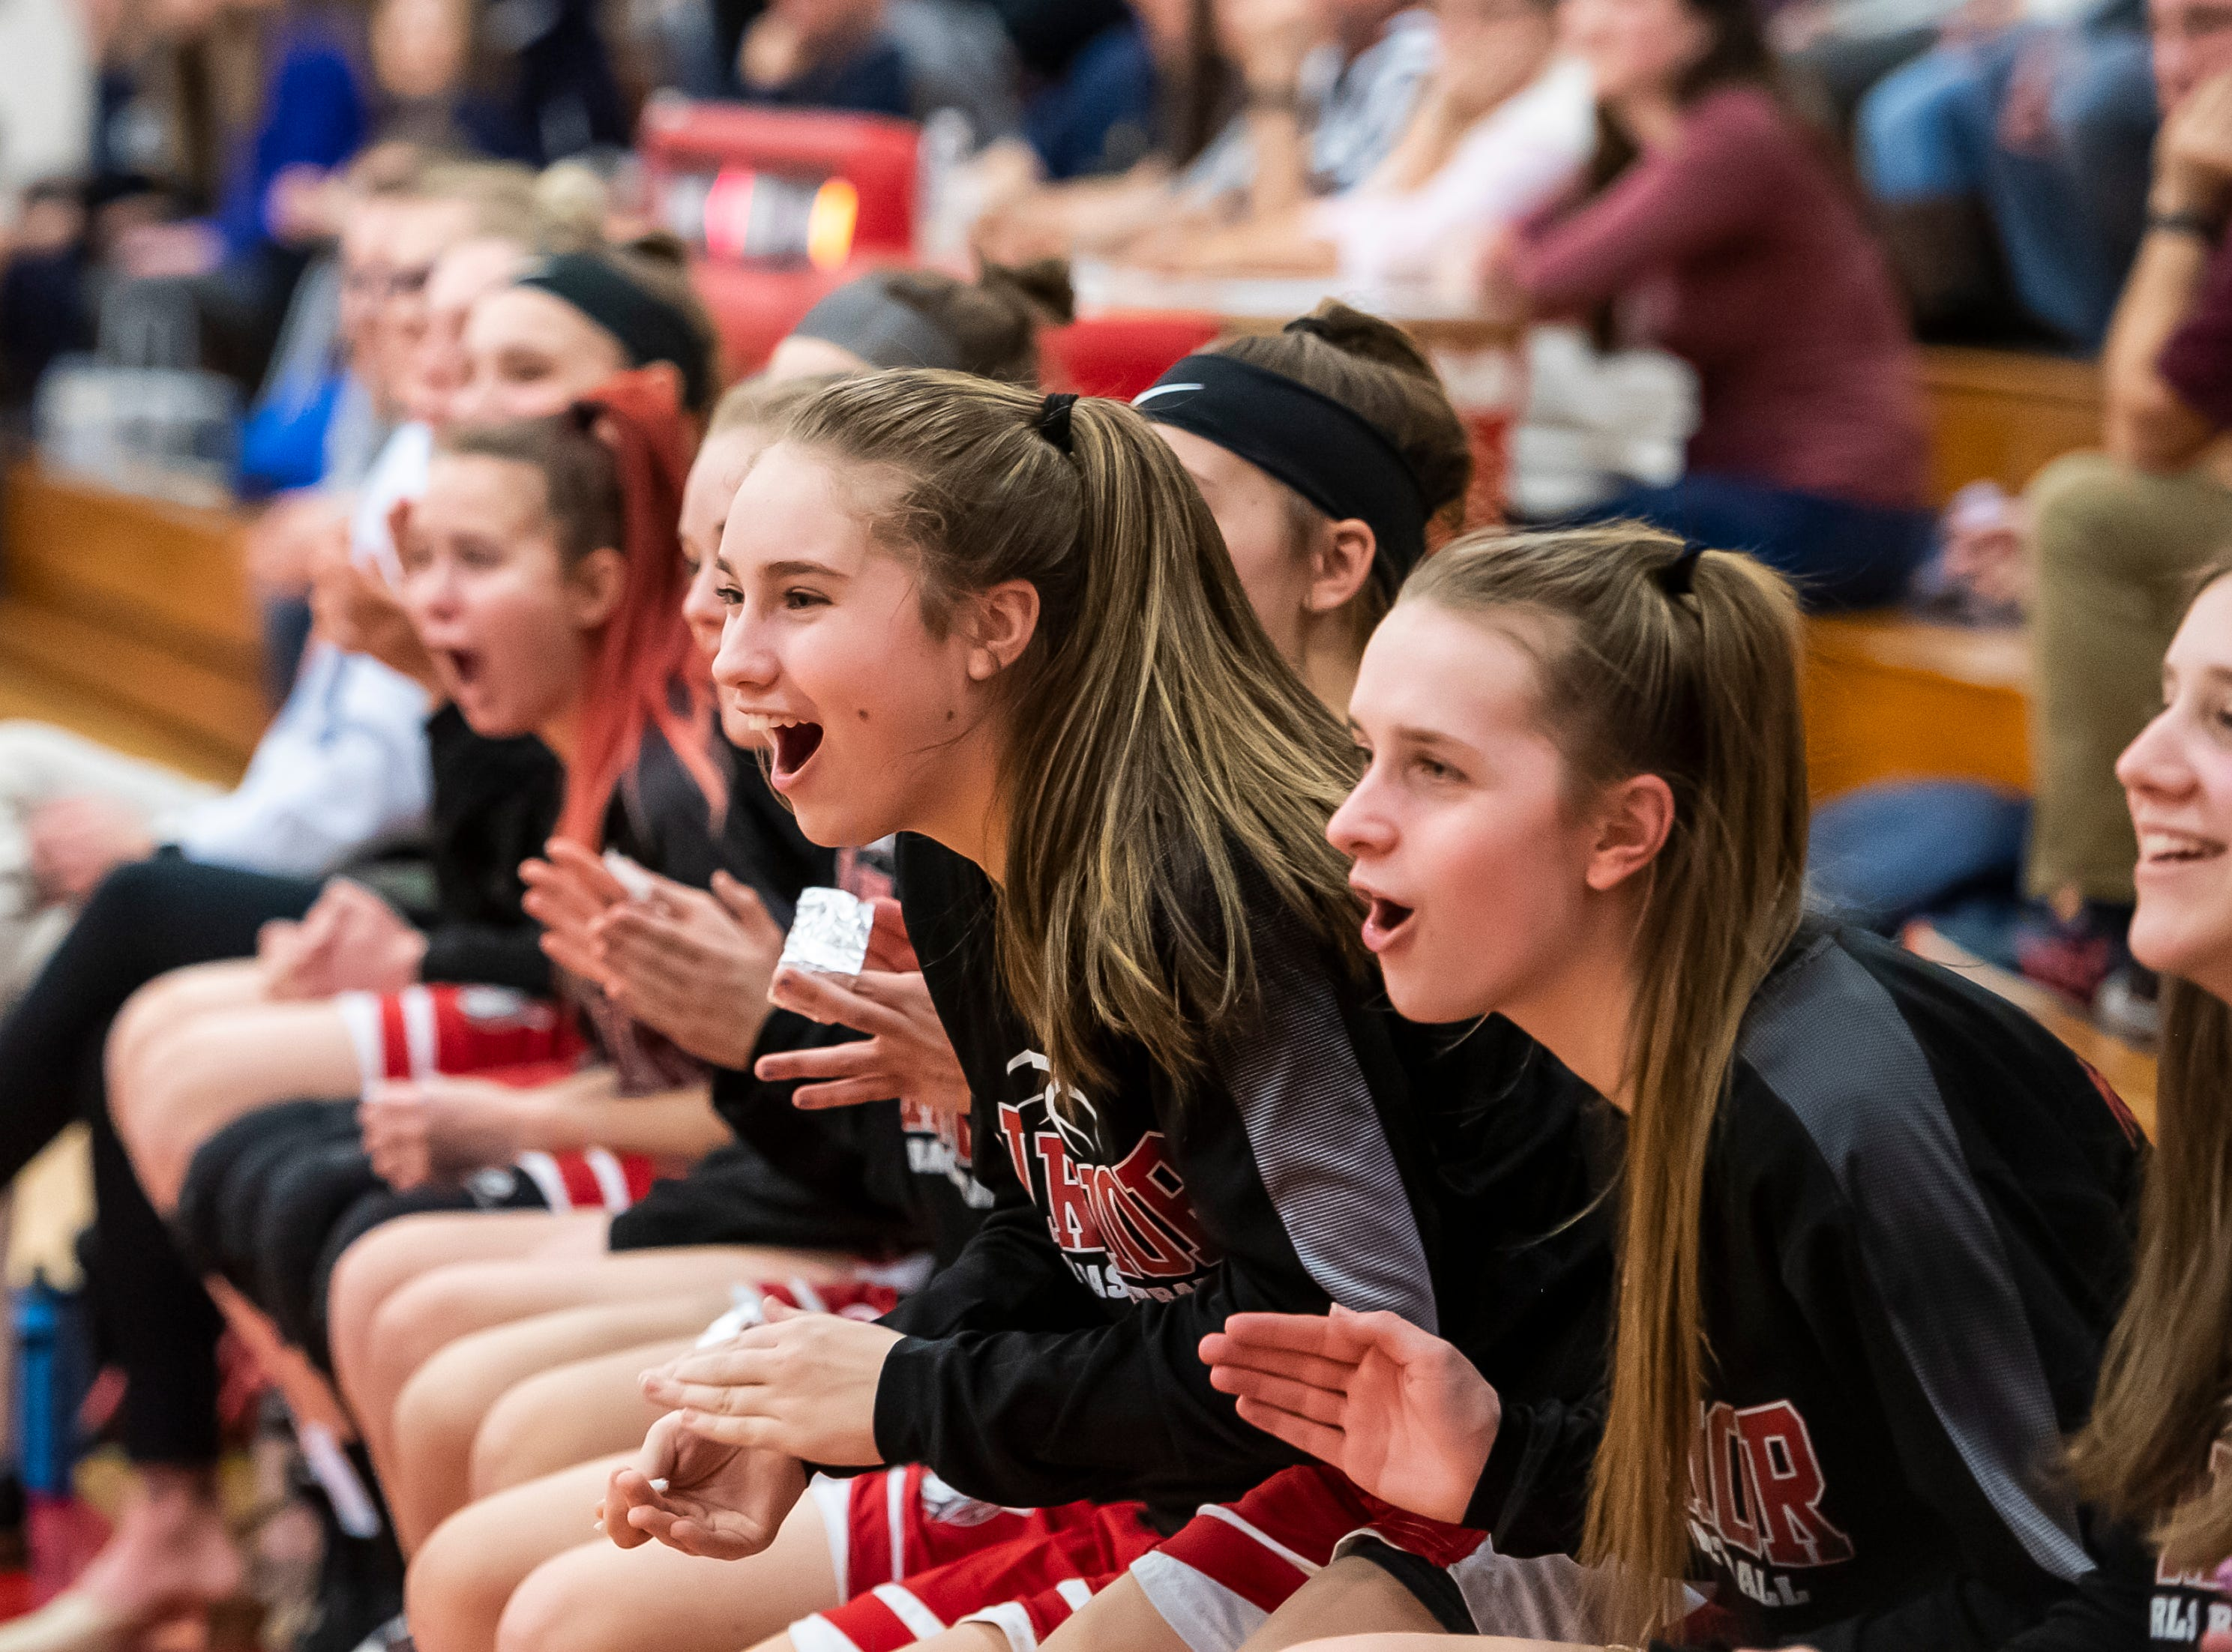 The Susquehannock bench reacts after Jaden Walker blocks a shot from Dallastown's D'Shantae Edwards in a YAIAA quarterfinal game at Dover High School Friday, February 8, 2019. The Wildcats won 42-29.